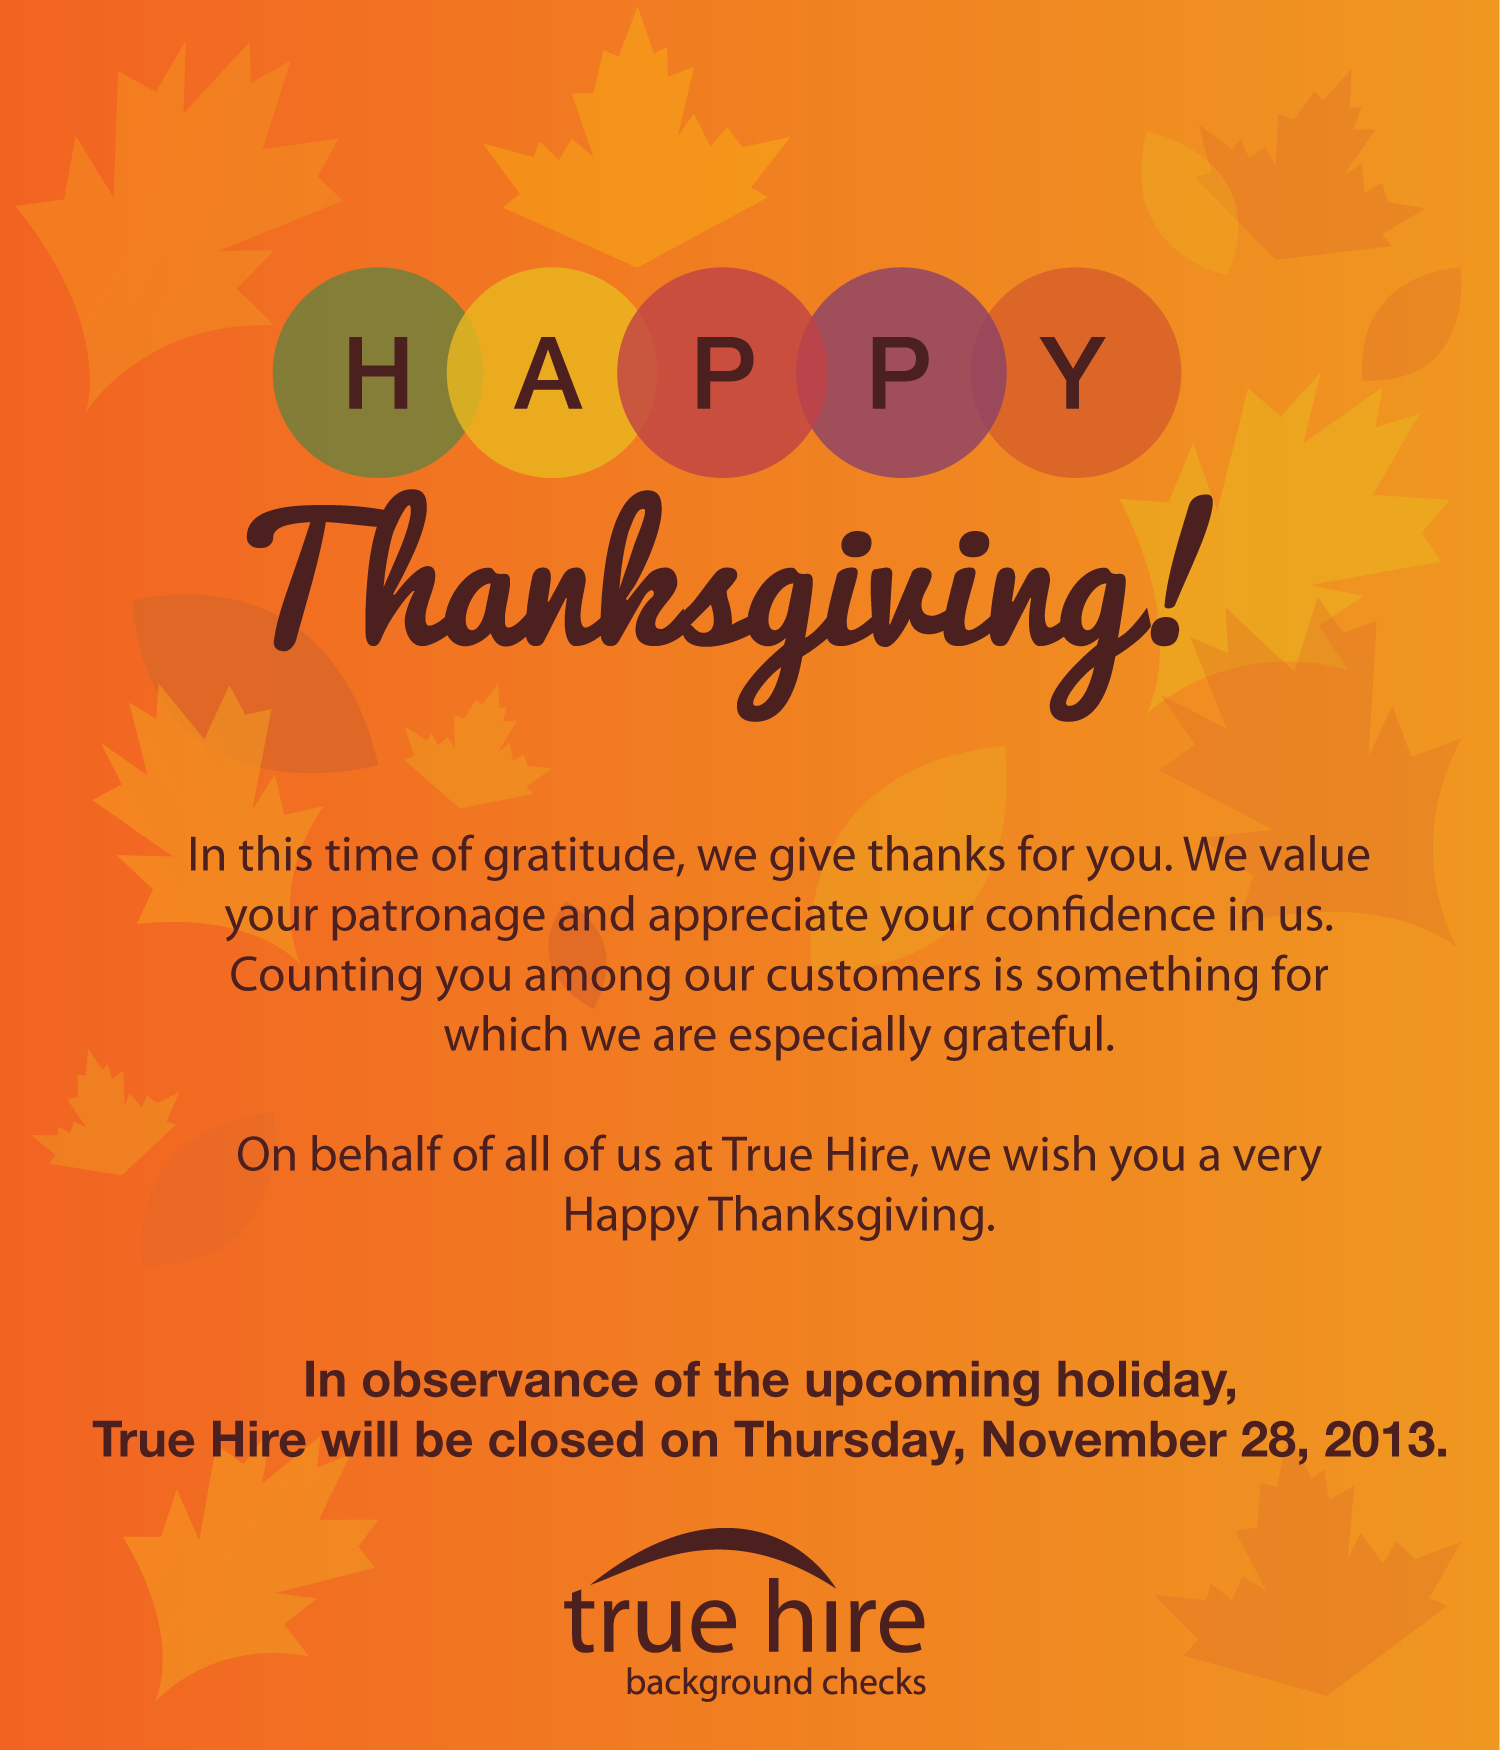 happy thanksgiving wishes fotolip com rich image and wallpaper